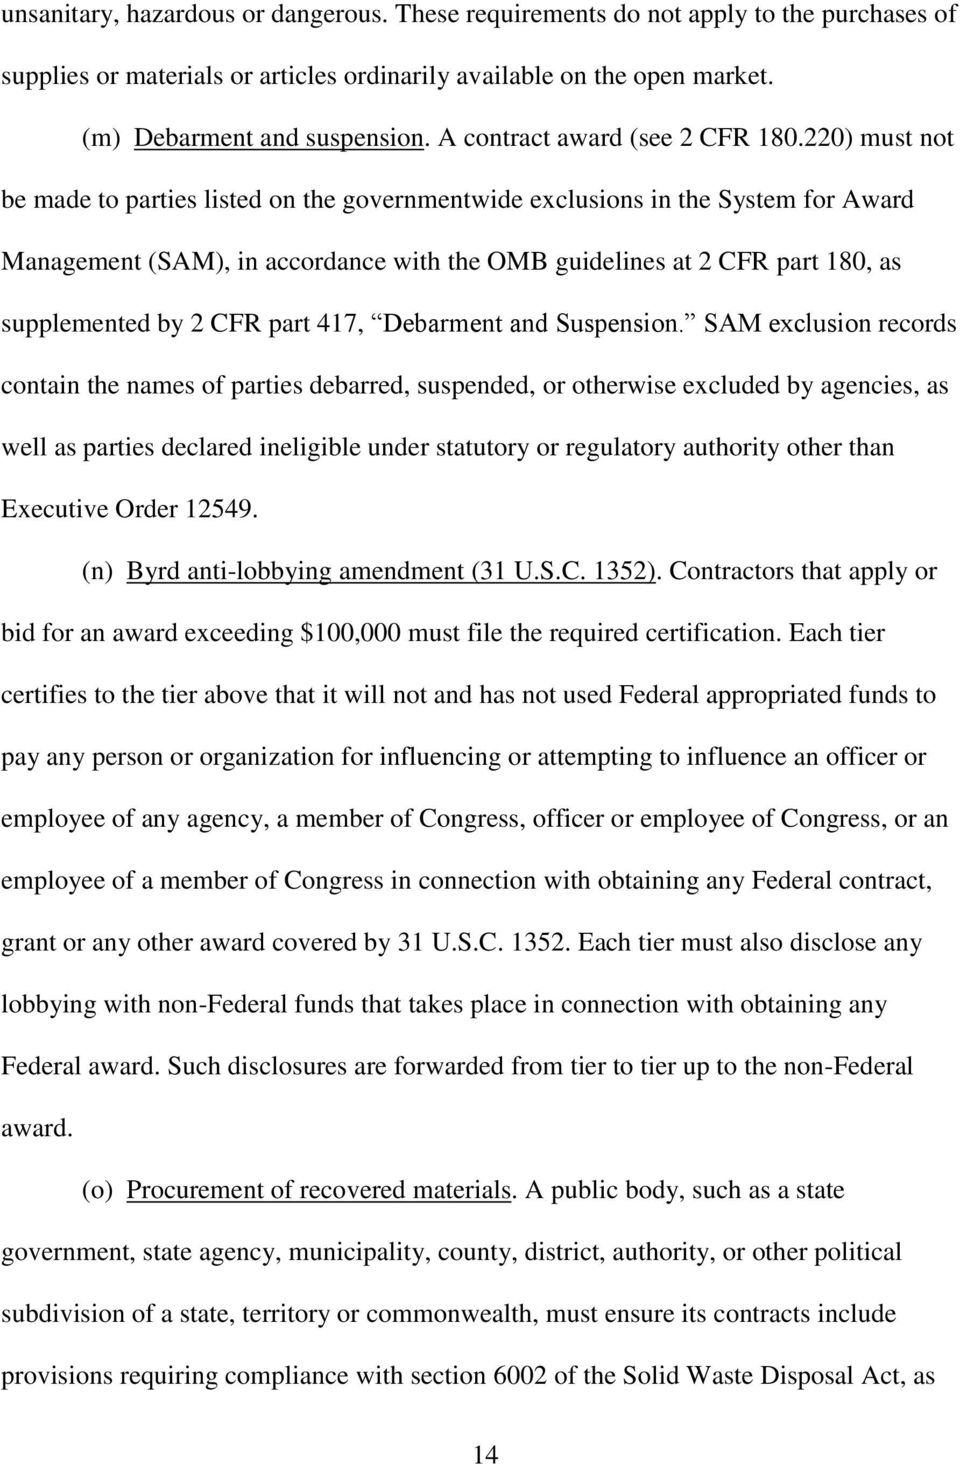 220) must not be made to parties listed on the governmentwide exclusions in the System for Award Management (SAM), in accordance with the OMB guidelines at 2 CFR part 180, as supplemented by 2 CFR